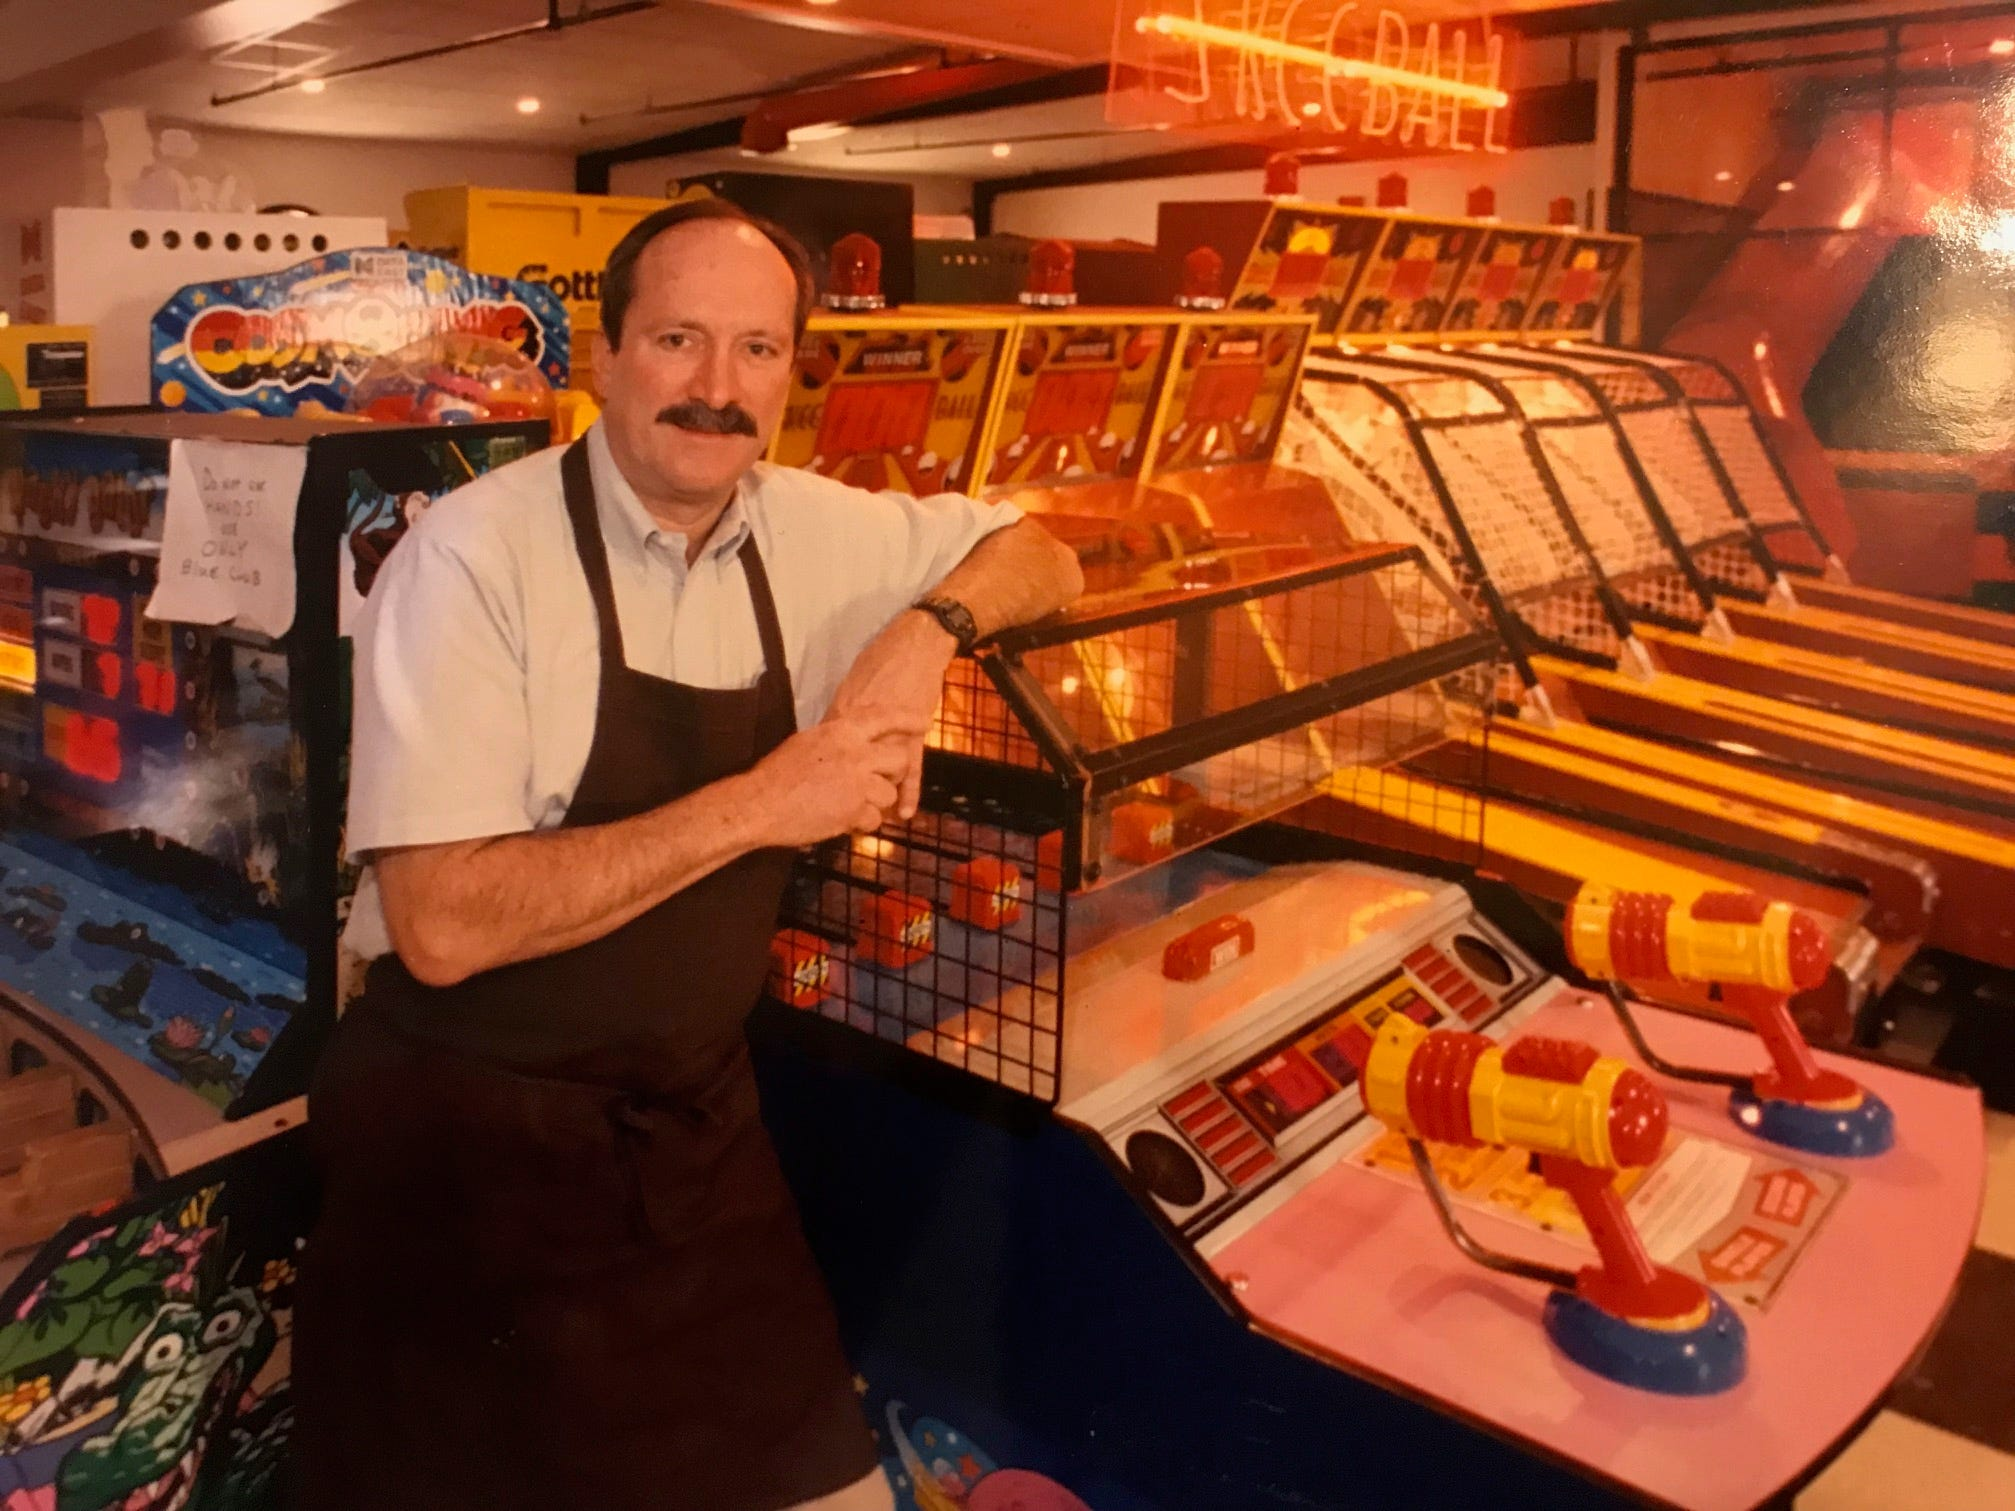 Owner John Dean stands in the game room of Shakey's Pizza in this 1992 file photo. Dean started work at the restaurant in 1968, and bought the franchise from Norman Hand.